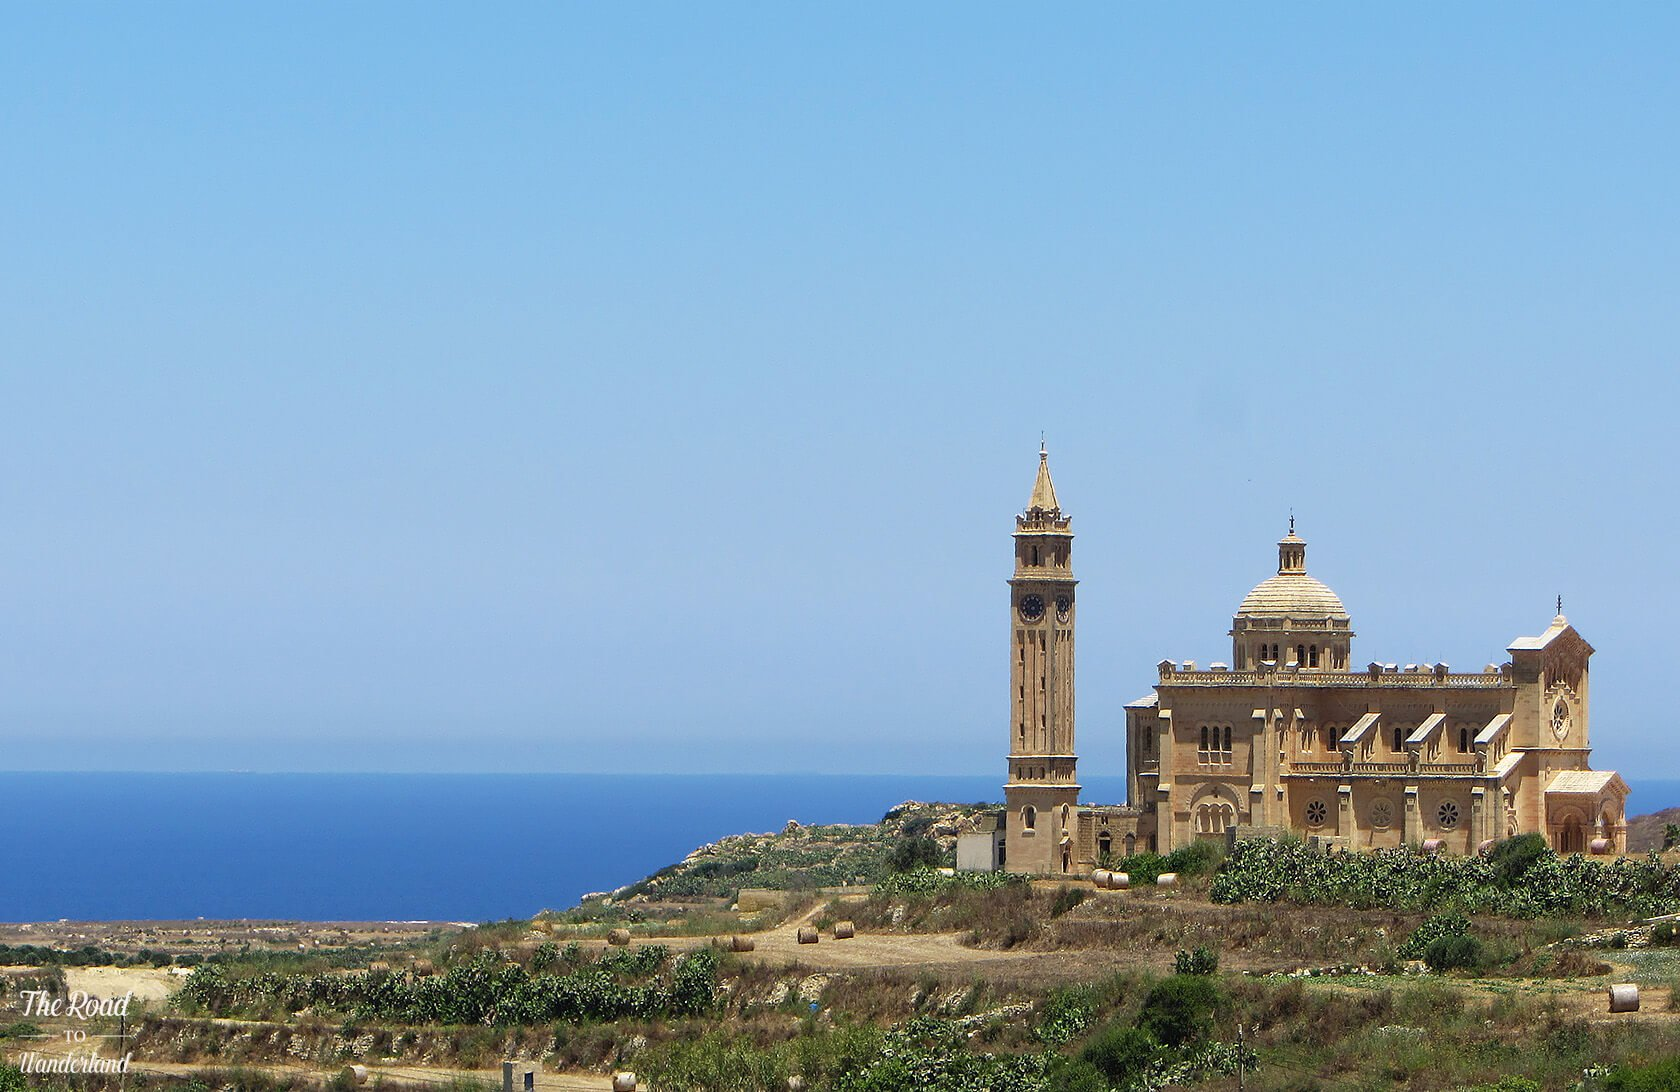 Ta' Pinu Shrine, Gozo